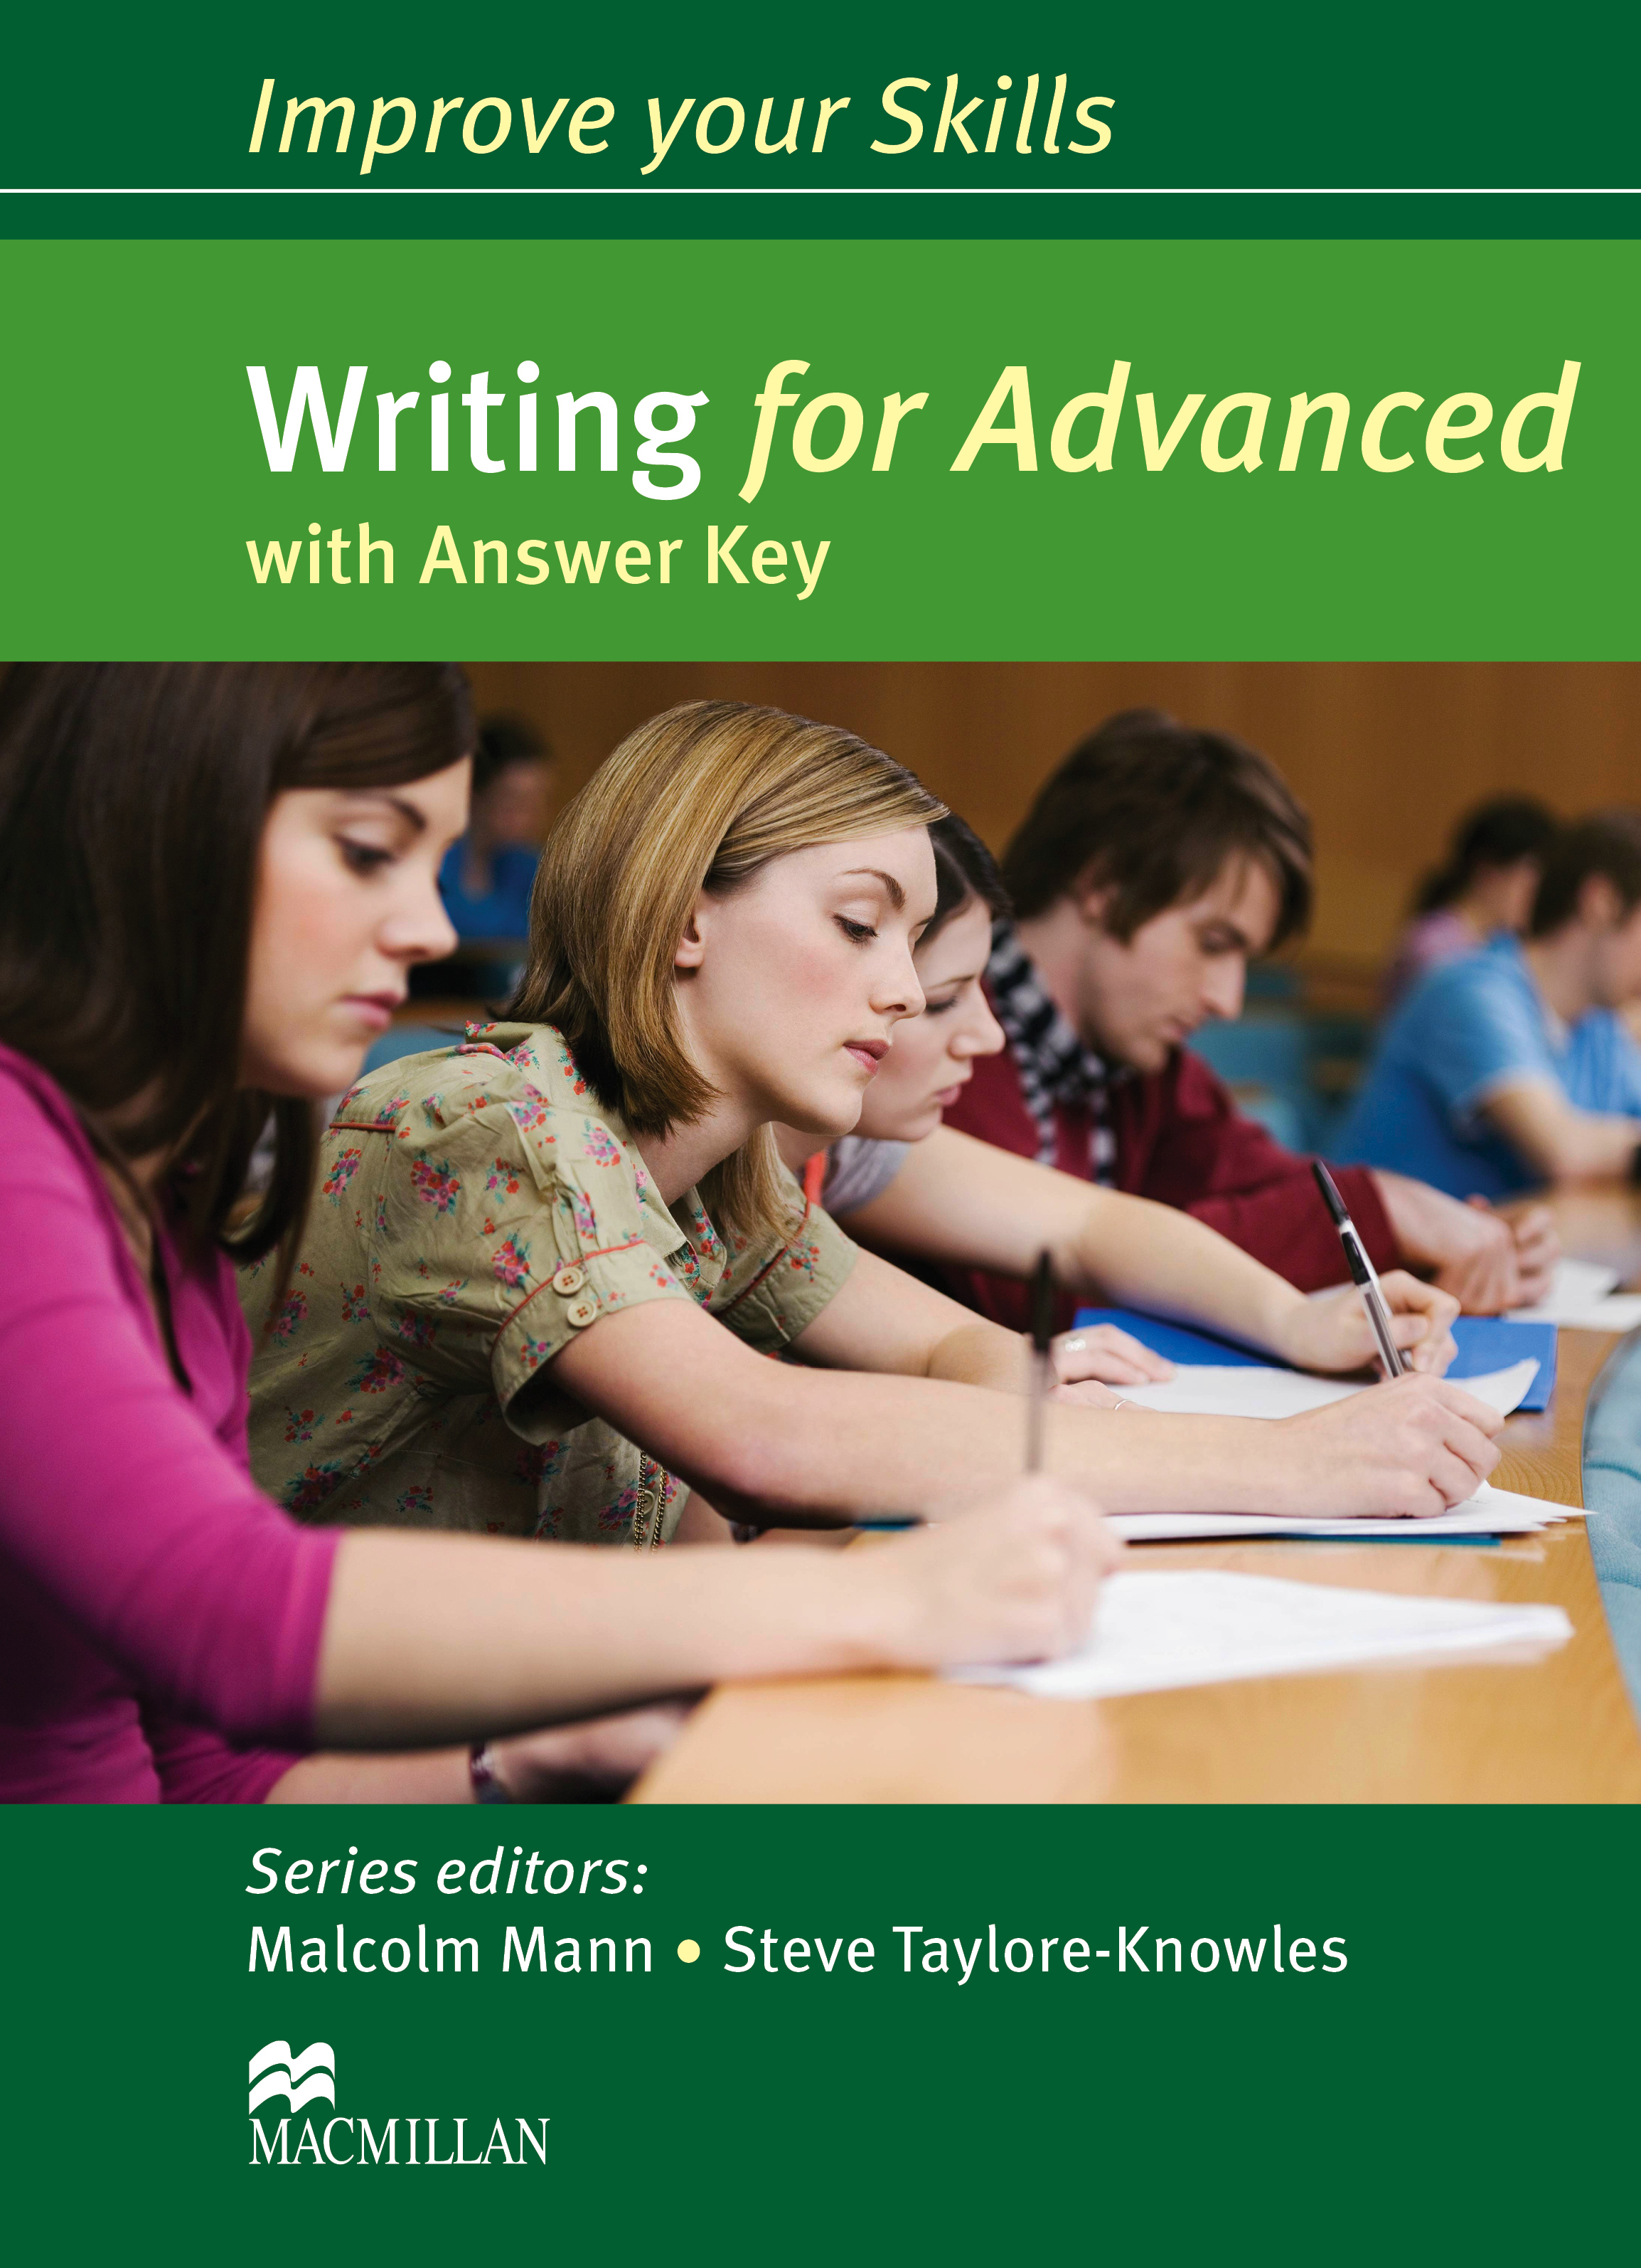 Improve your Skills: Writing for Advanced Student